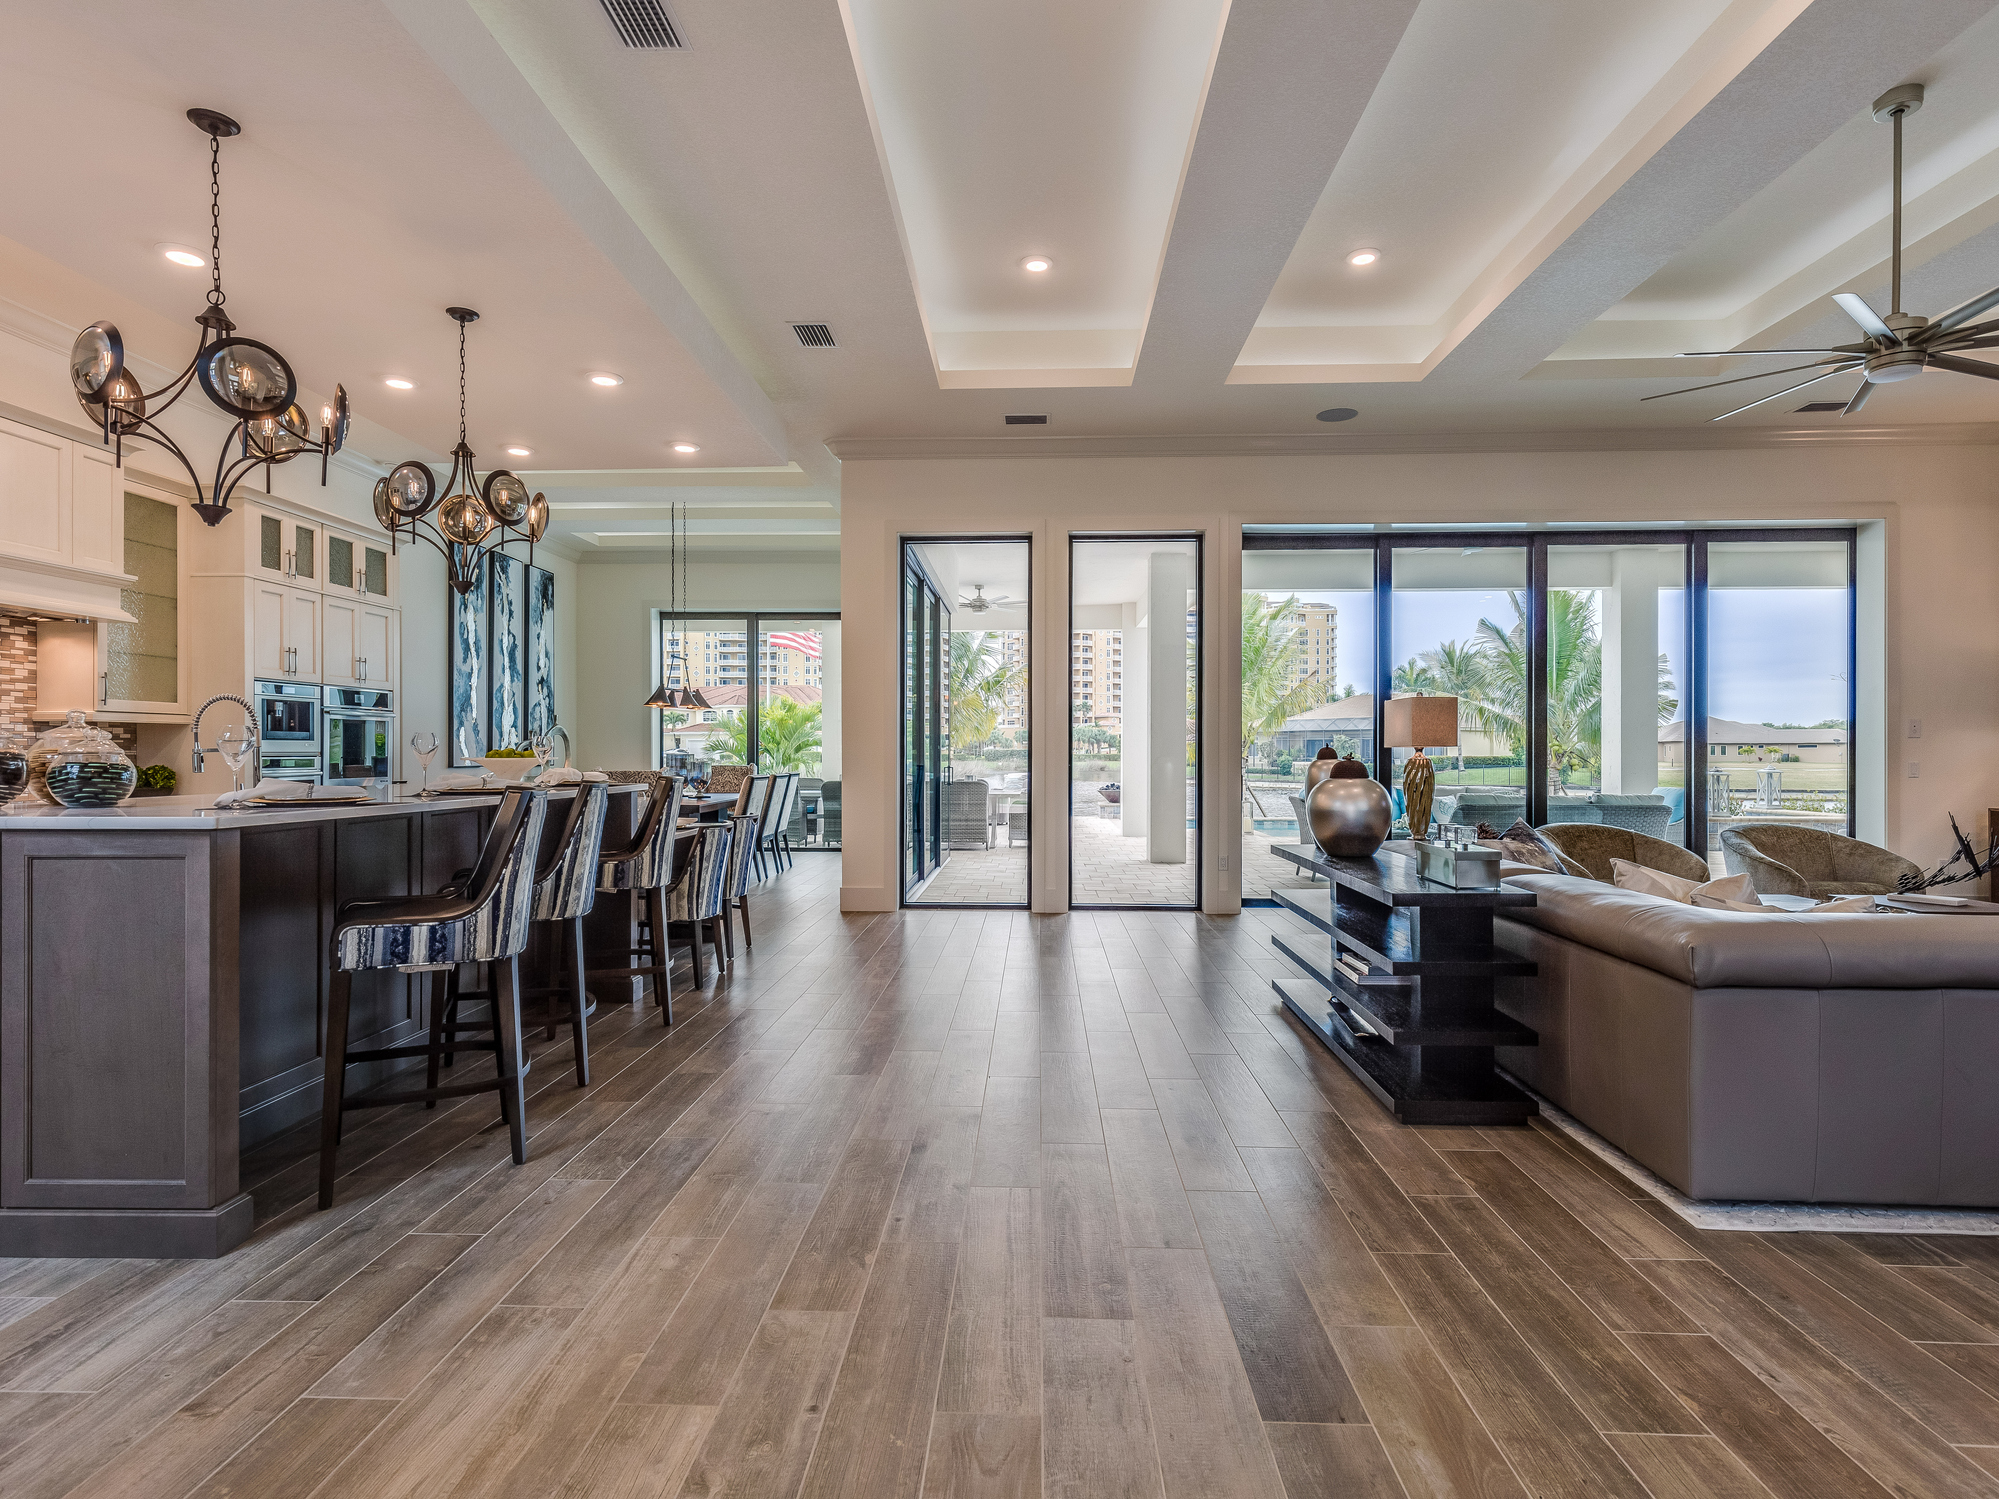 Hardwood floor in open floor plan home